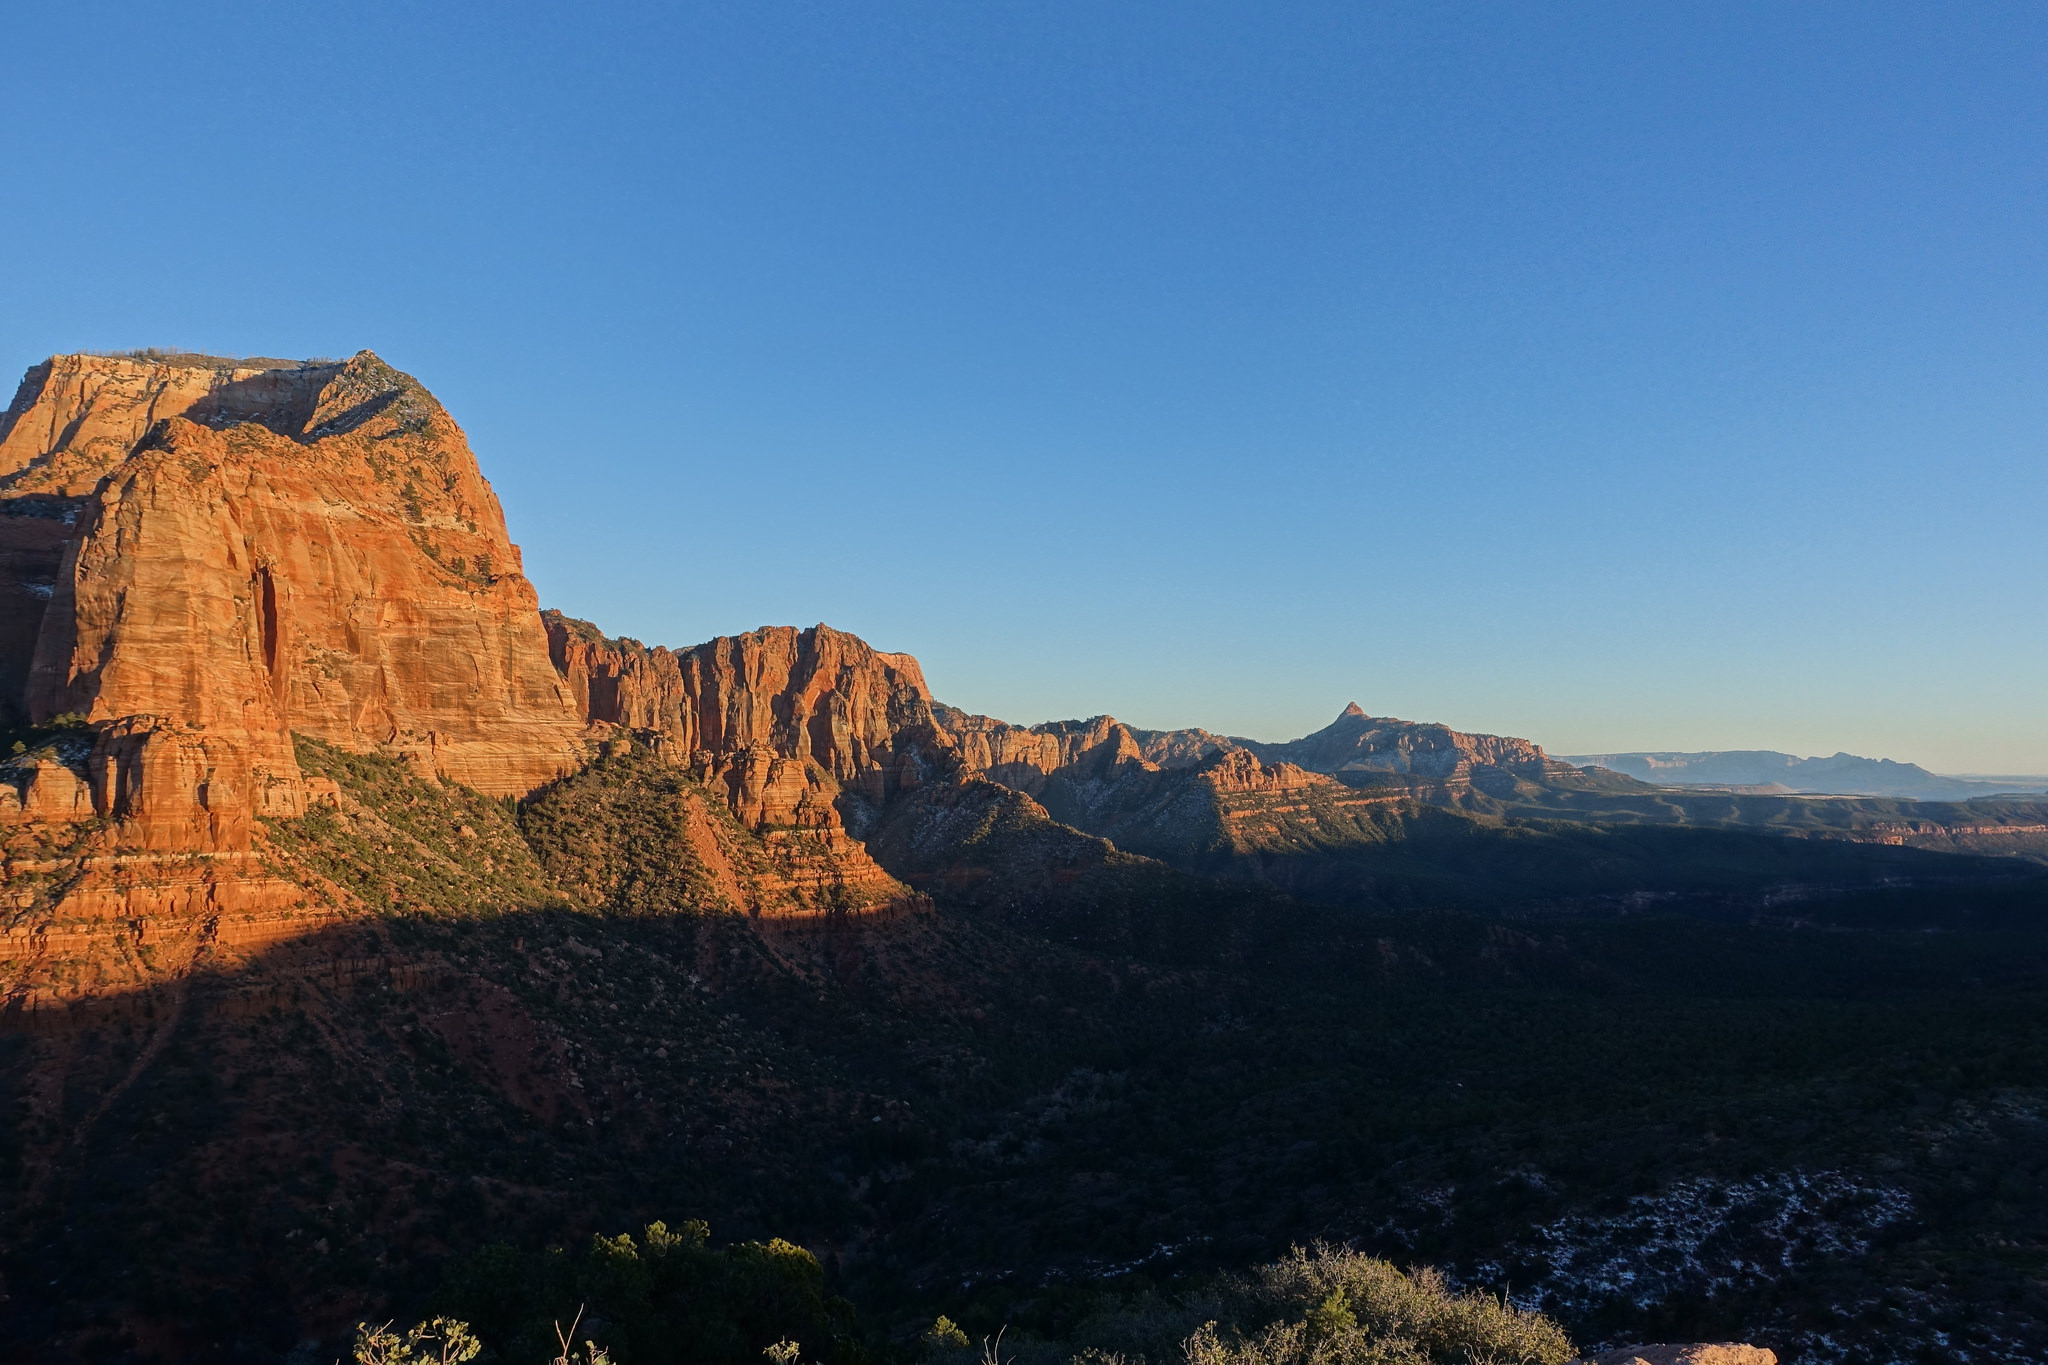 Kolob Canyons from Timber Creek Overlook